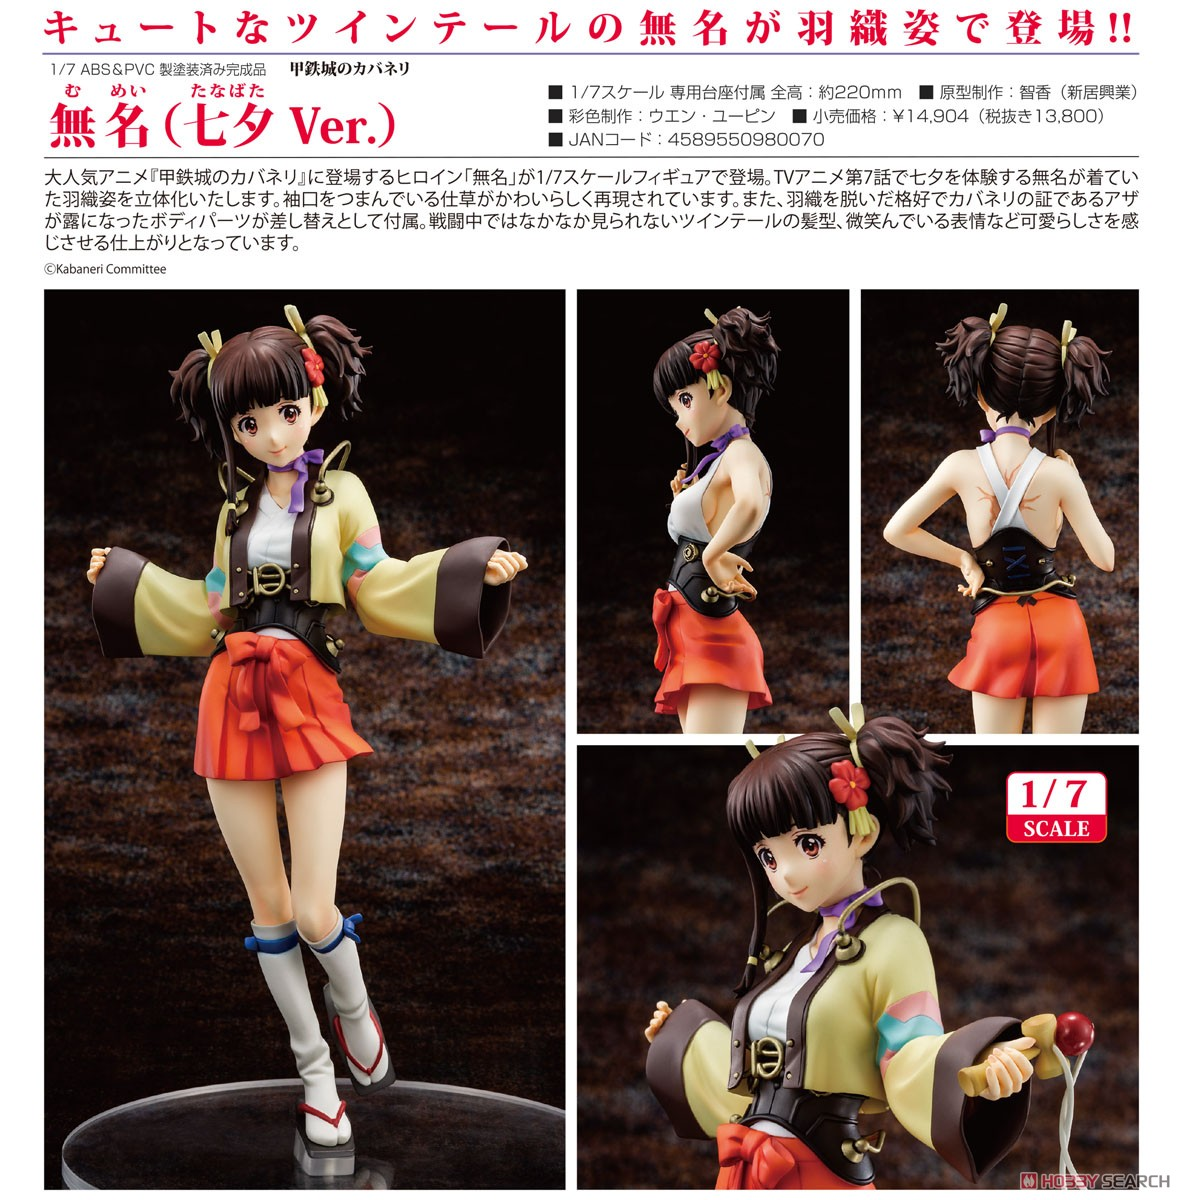 Kabaneri of the Iron Fortress - Mumei (Tanabata Ver.) 1/7 Figur